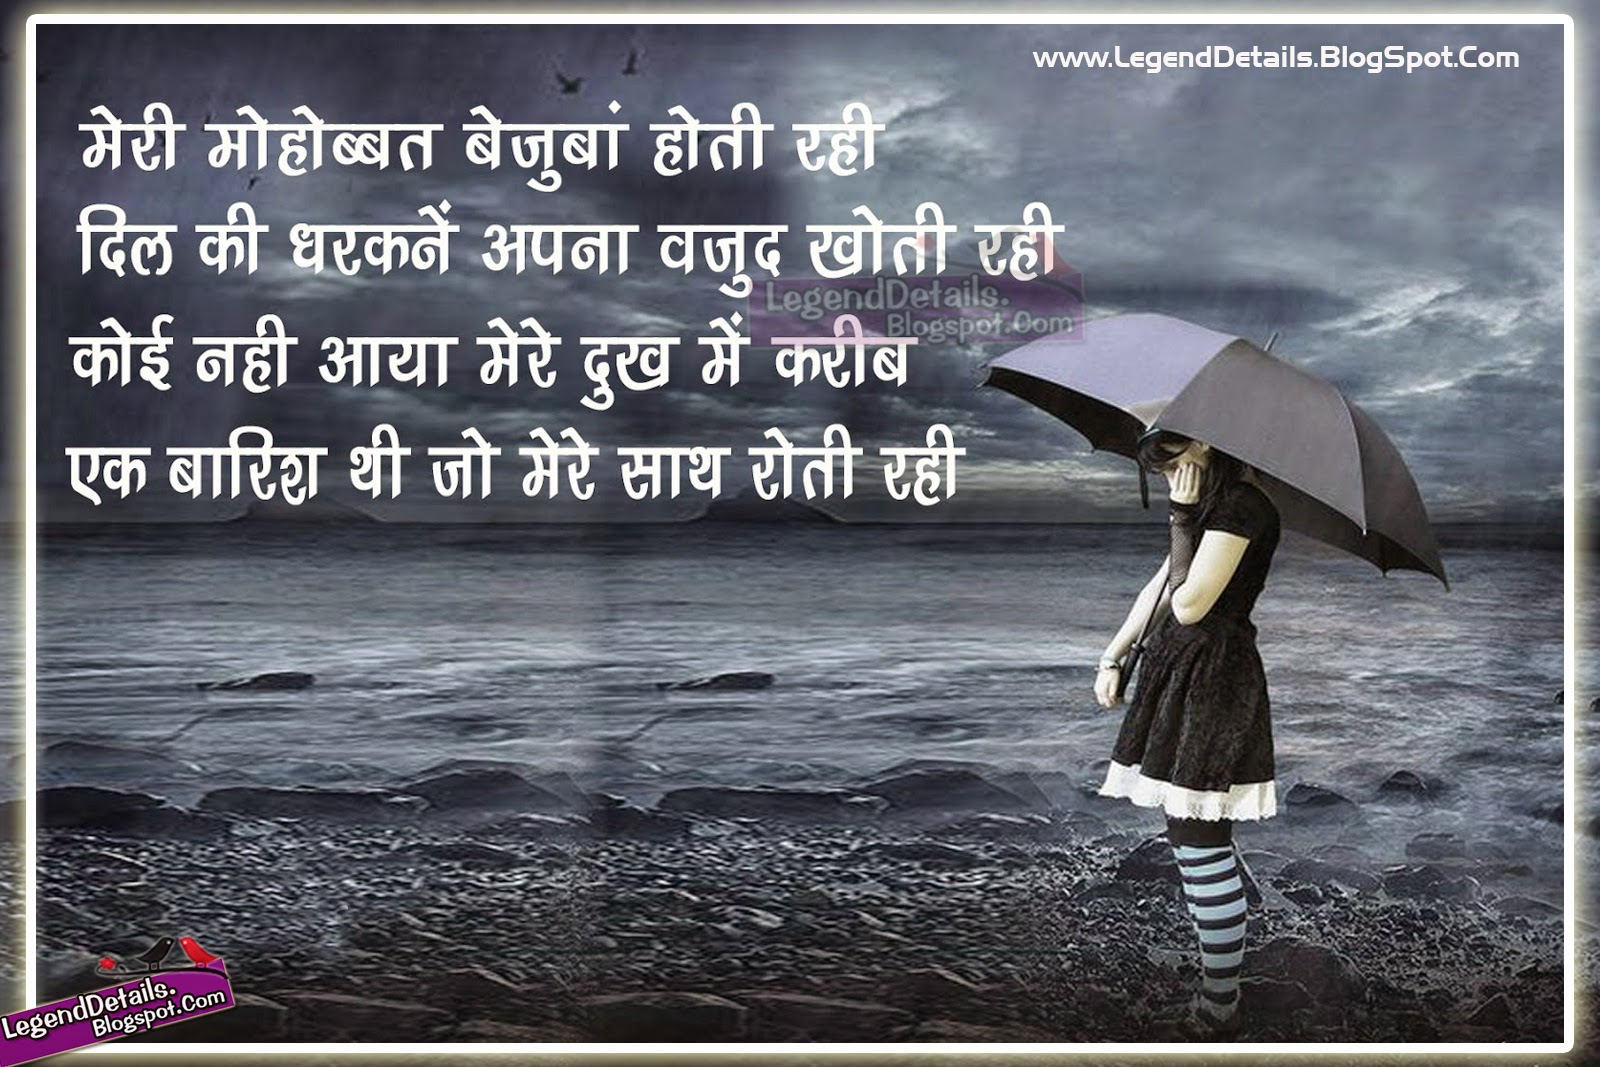 Sad Love Quotes For Him With Images Free Download : hindi love failure messages for him hindi sad love quotes in hindi